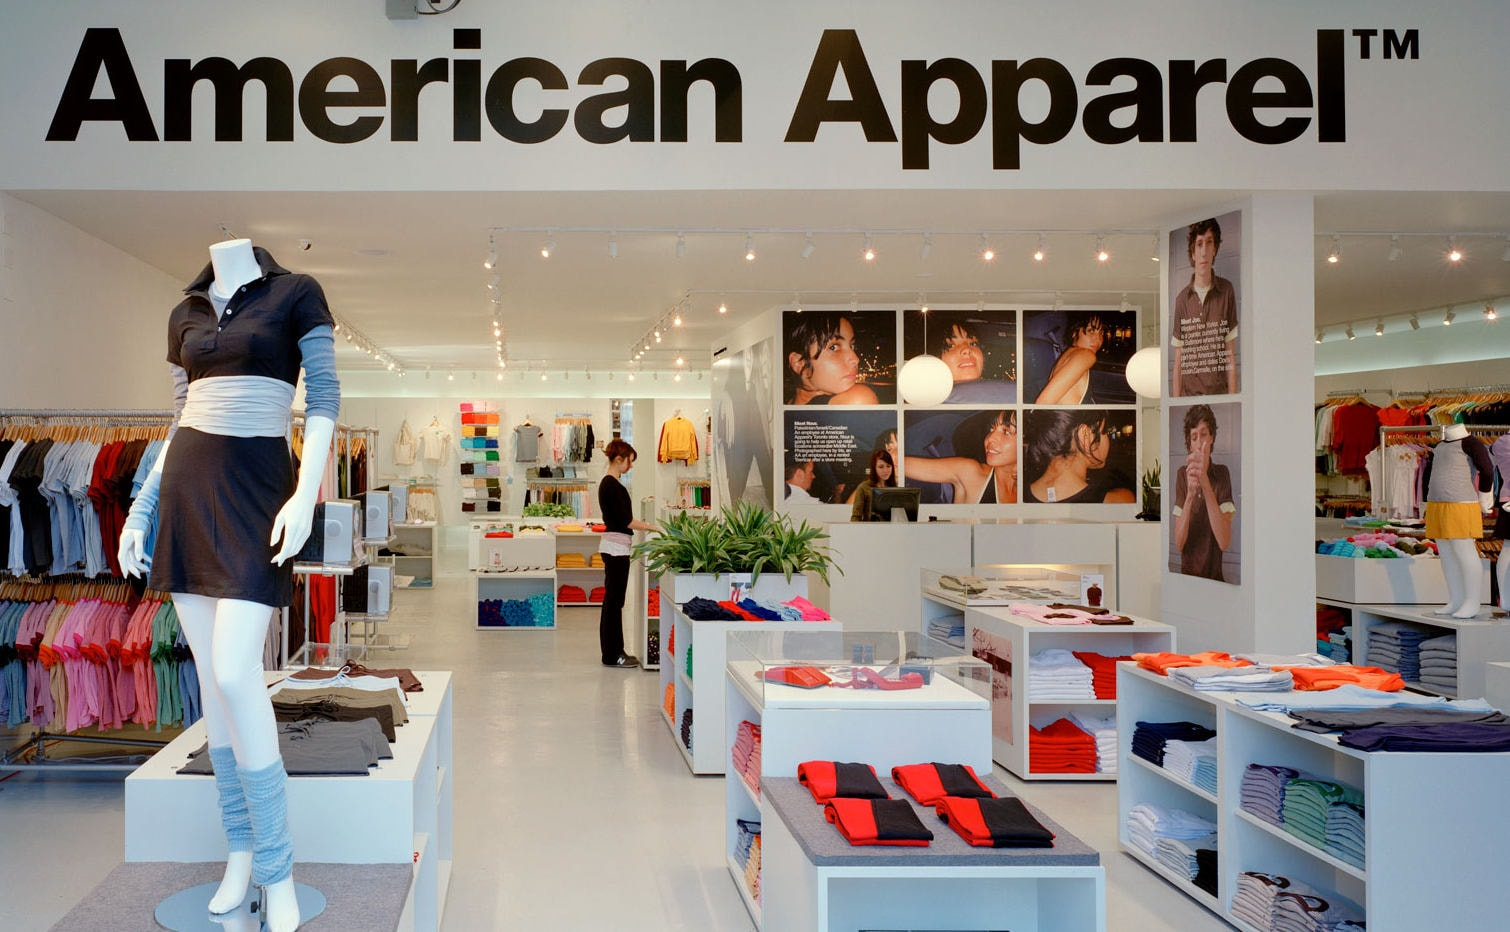 The 'big loser' of American Apparel's filing for Chapter 11 is Dov Charney